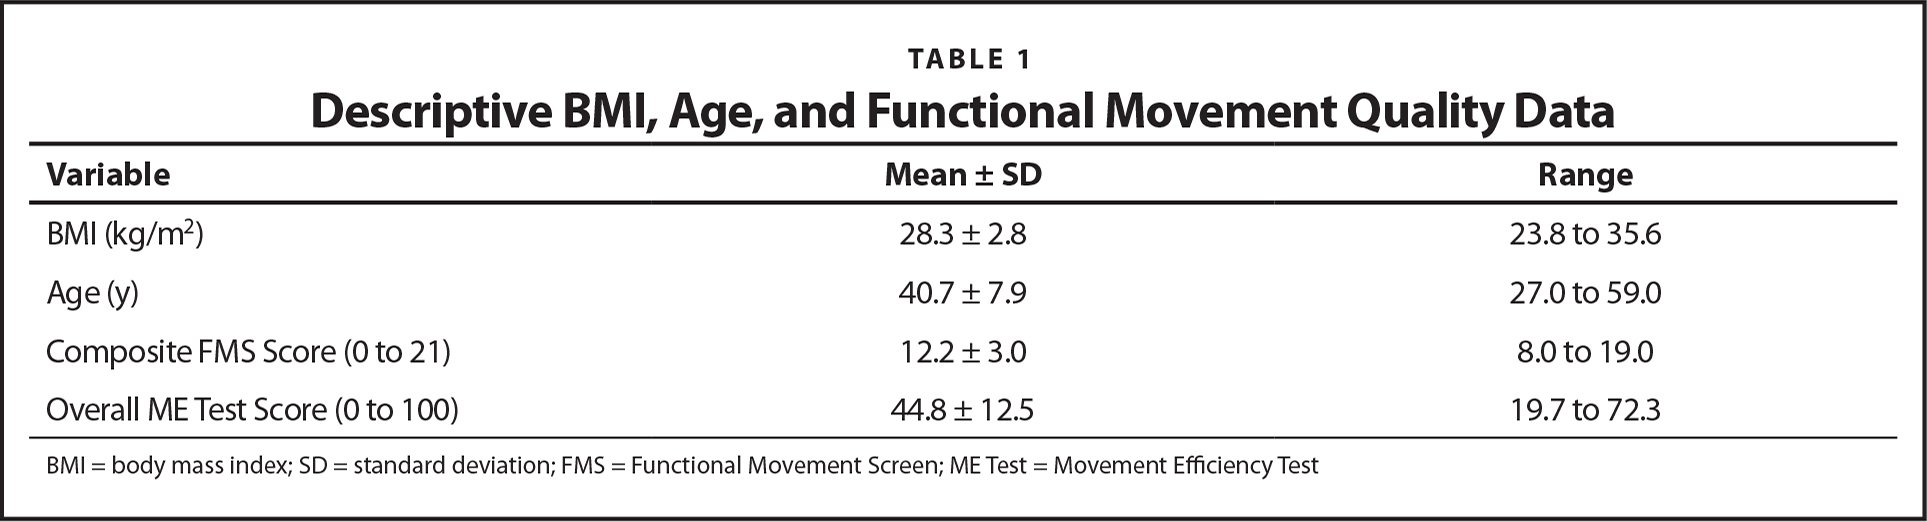 Descriptive BMI, Age, and Functional Movement Quality Data